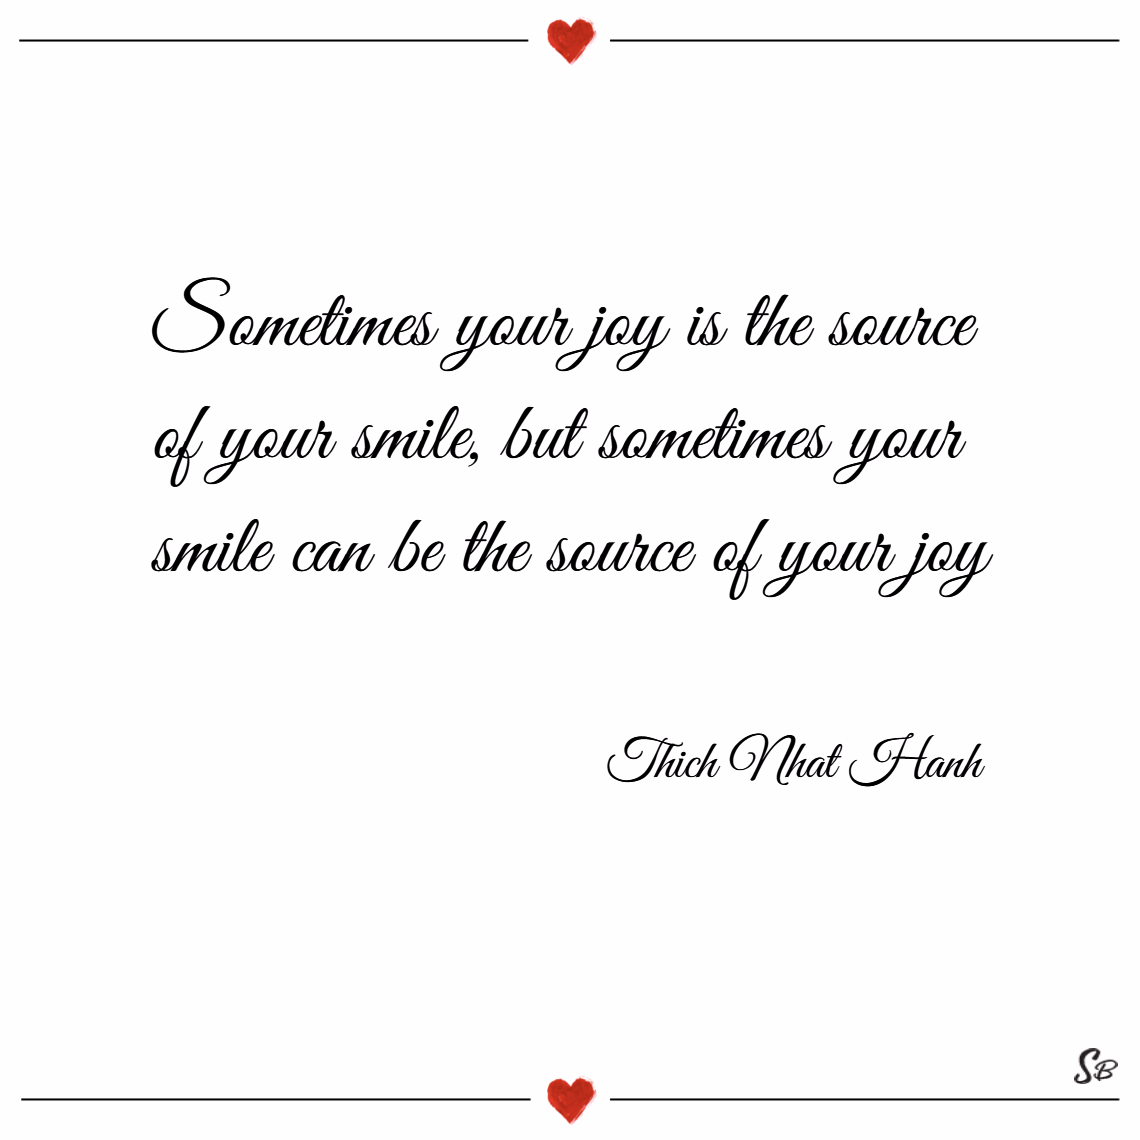 Sometimes your joy is the source of your smile, but sometimes your smile can be the source of your joy. – thich nhat hanh